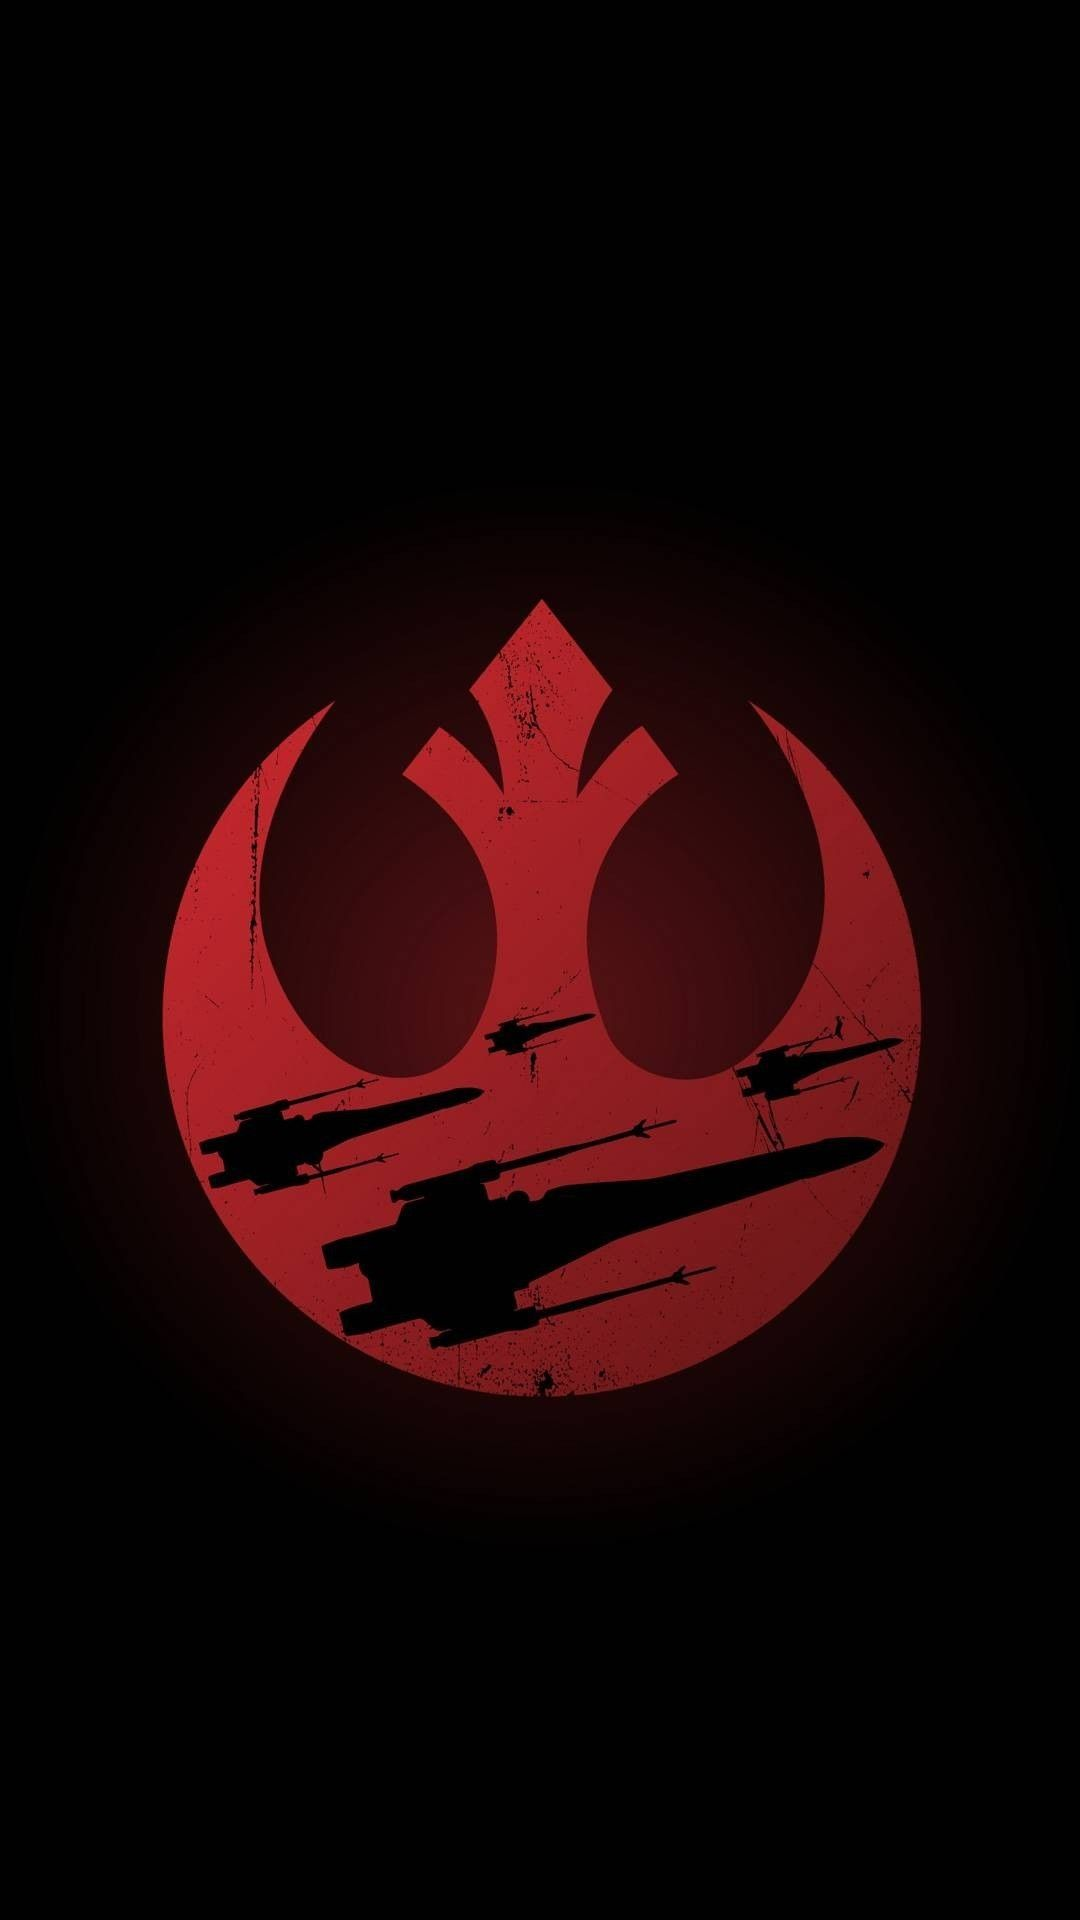 1080x1920 72+ Mandalorian Iphone Wallpapers on WallpaperPlay